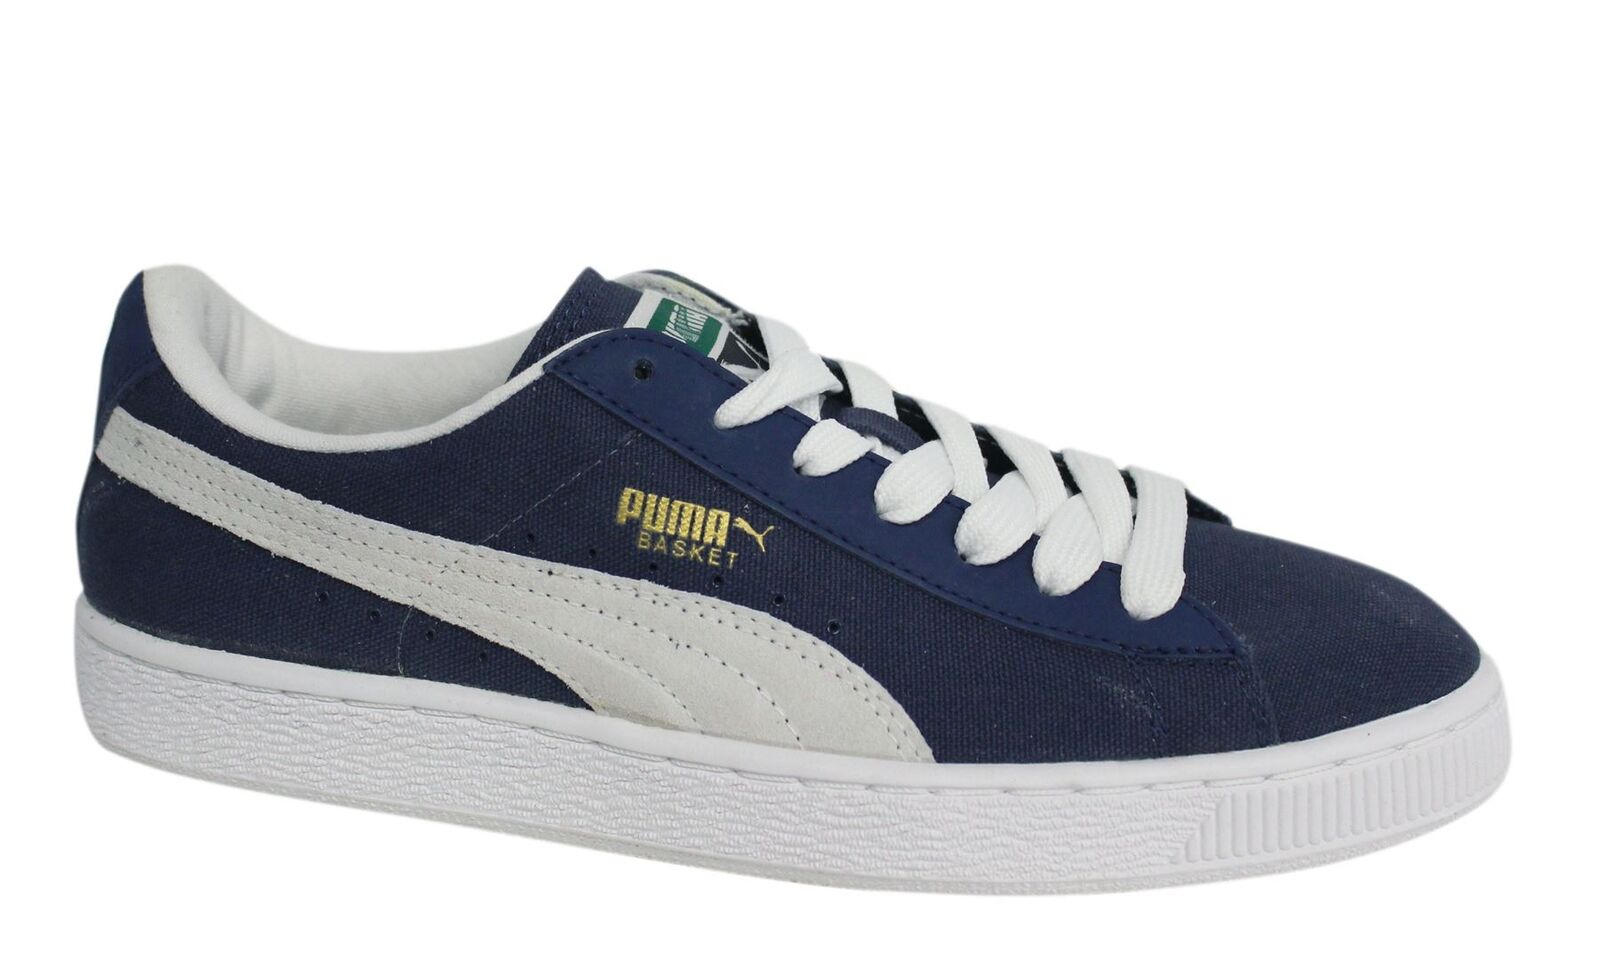 Puma Basket Classics Navy blanc Lace Up homme Trainers 356174 05 U22